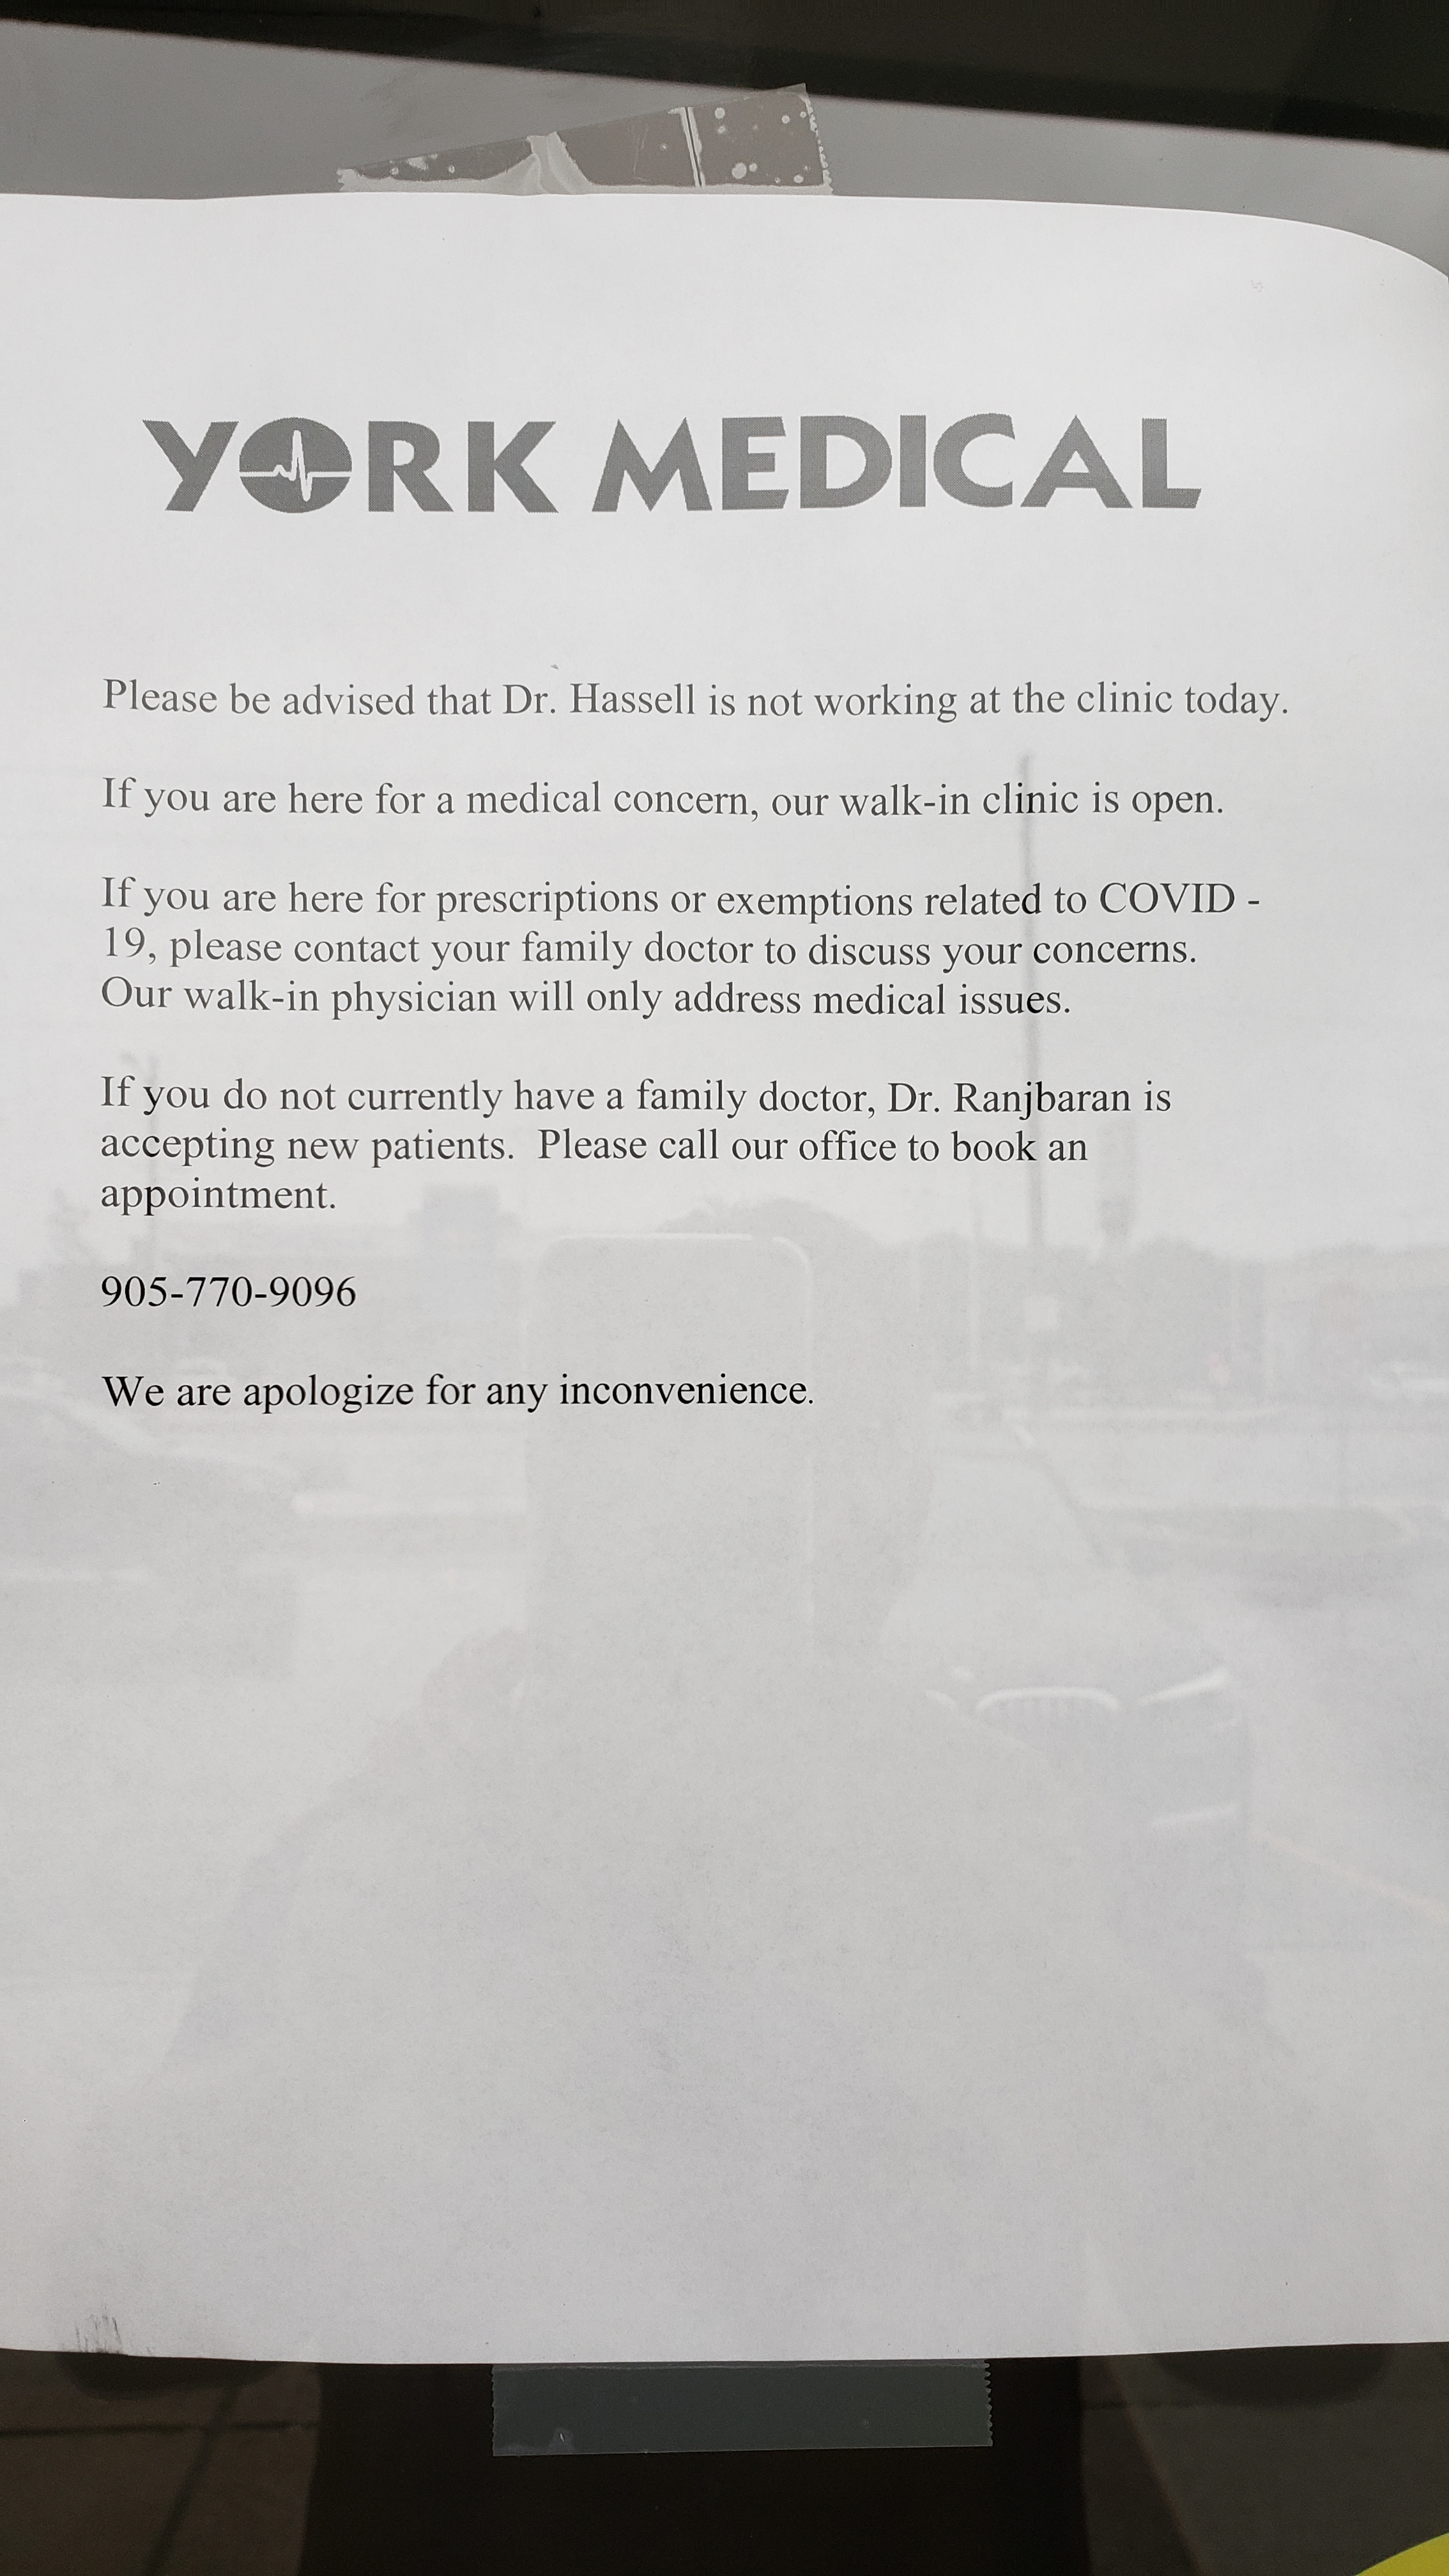 A piece of paper posted in a window advising people that a doctor was pausing his practice